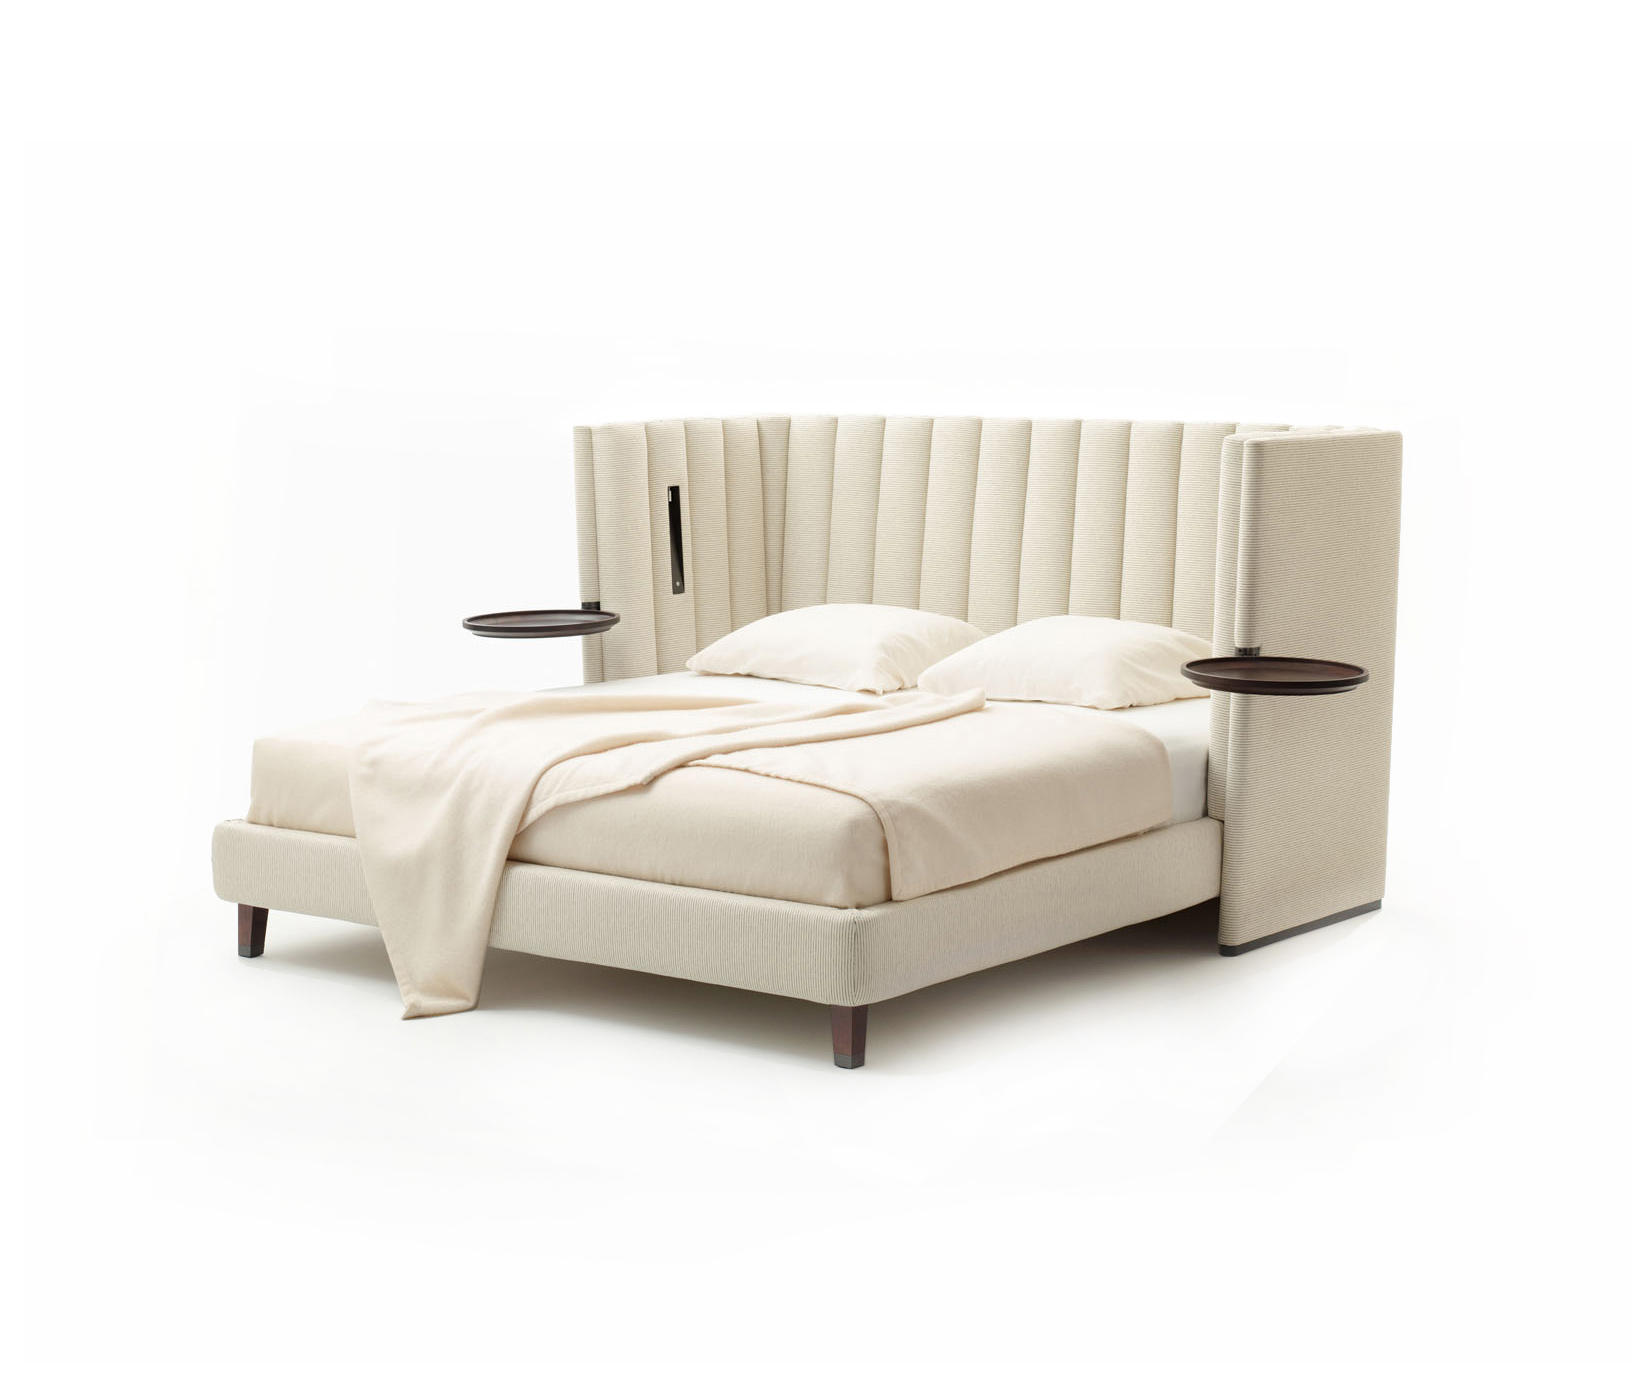 Brooklyn bed double beds from neue wiener werkst tte - Joop loft sofa ...